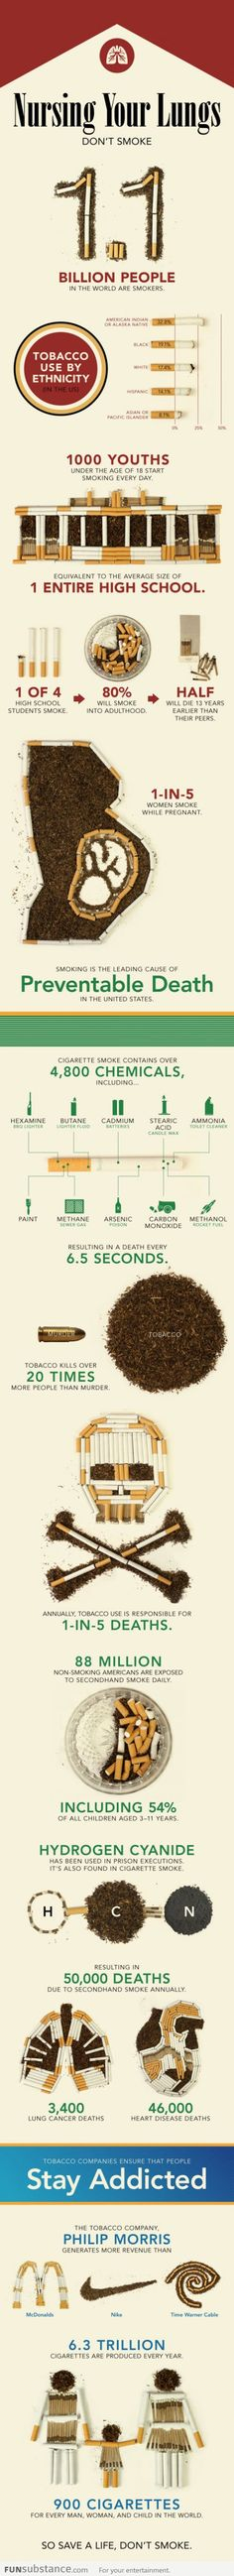 An Infographic About Smoking